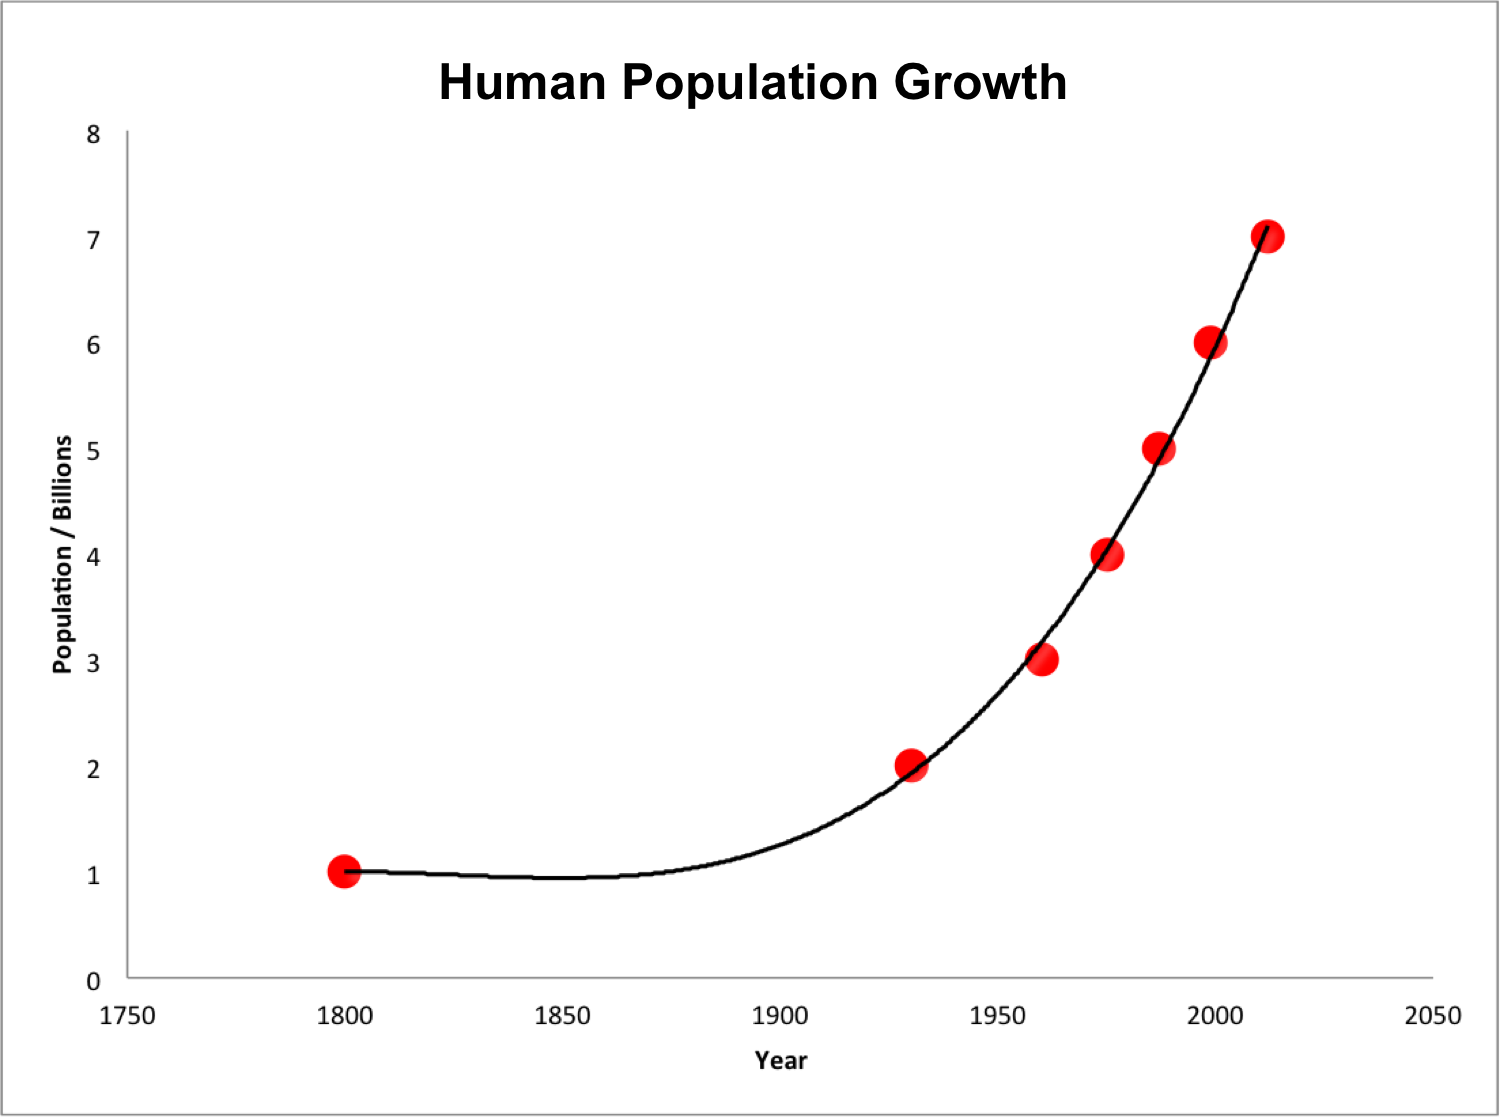 Filehuman population growth from 1800 to 2000g wikipedia filehuman population growth from 1800 to 2000g nvjuhfo Choice Image